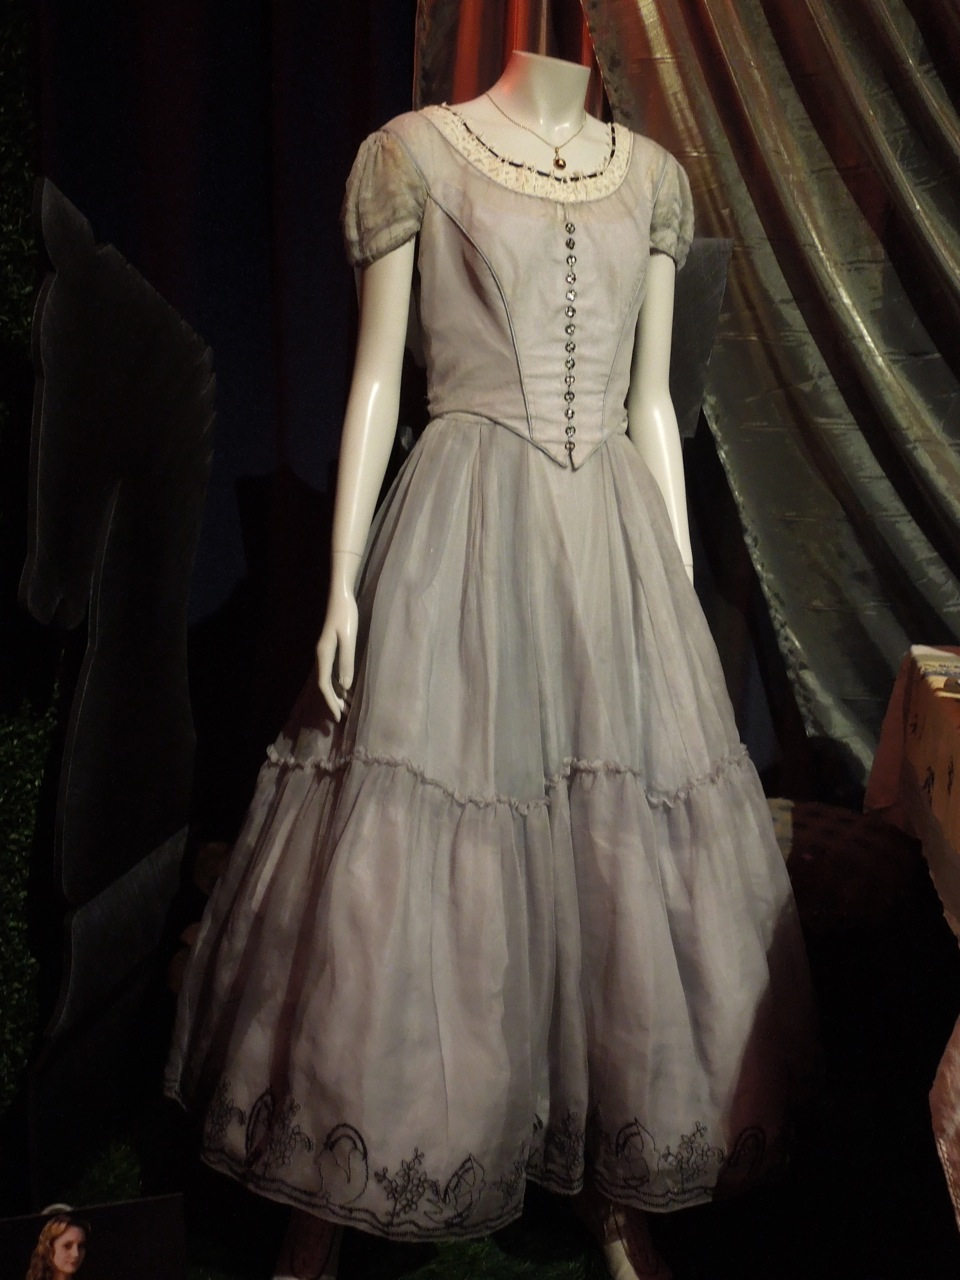 Original Costumes And Props From Tim Burtonu0026#39;s Alice In Wonderland On Display... | Hollywood ...